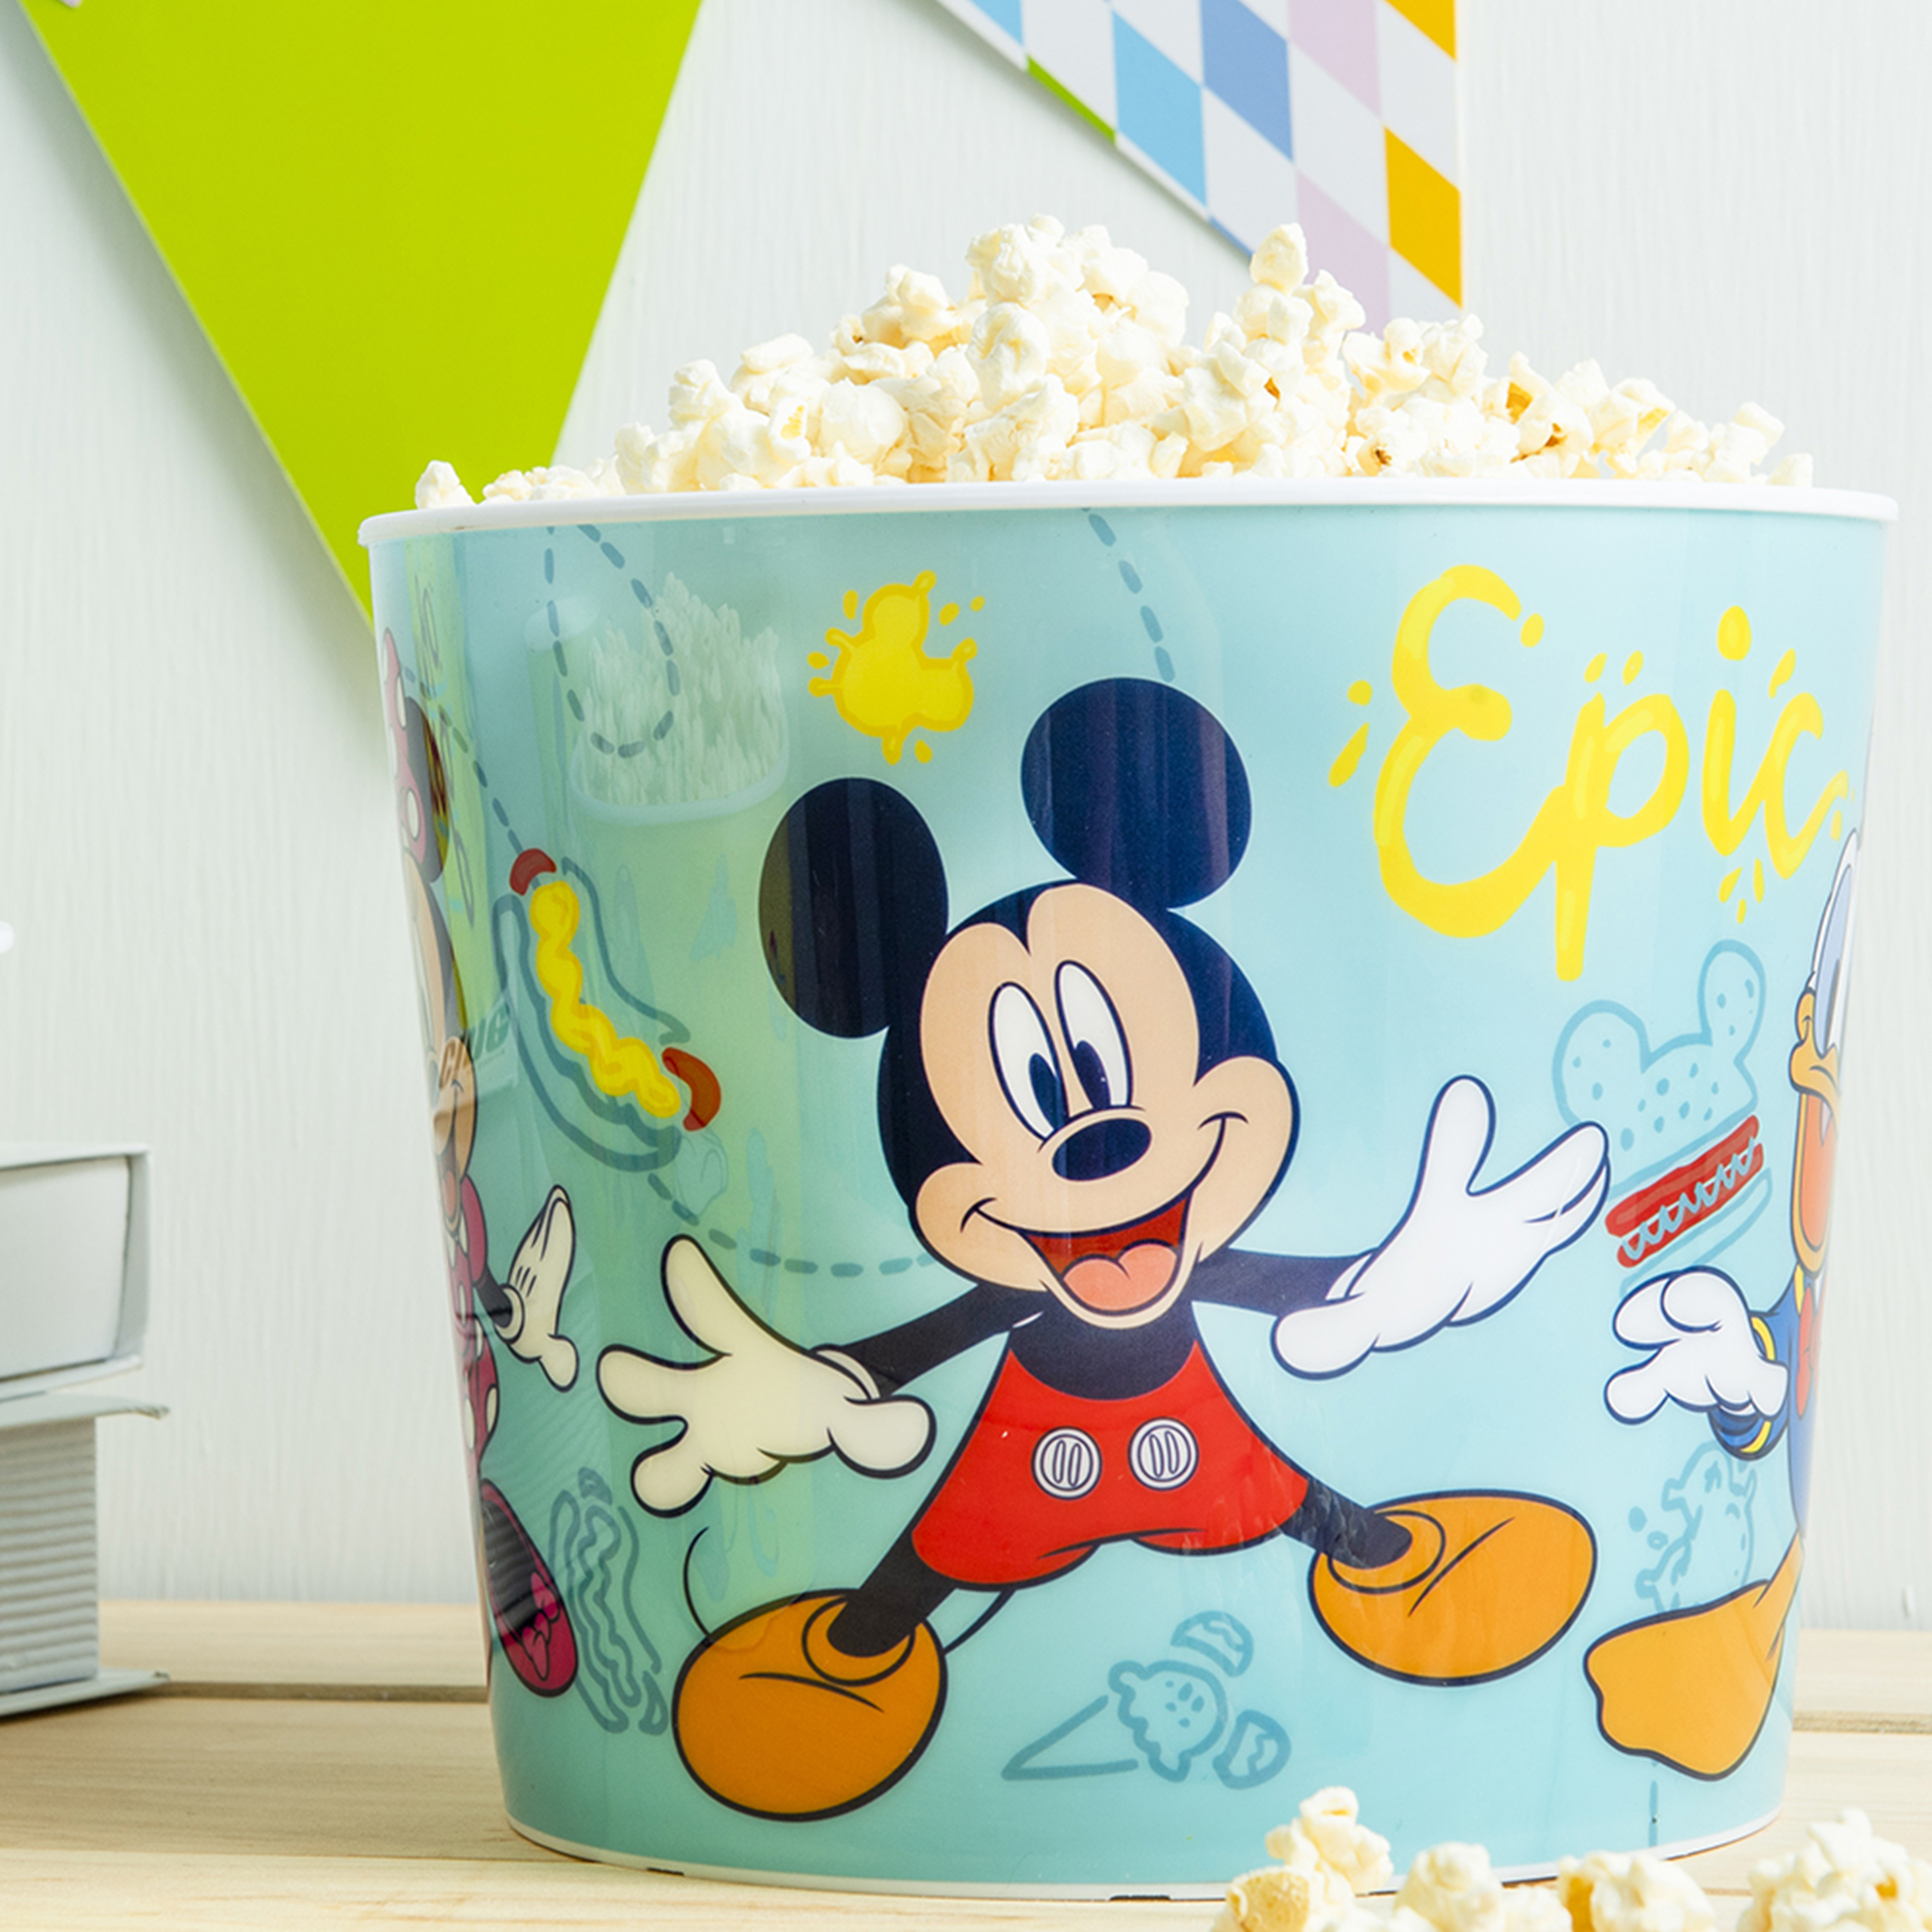 Disney Plastic Popcorn Container and Bowls, Mickey Mouse and Minnie Mouse, 5-piece set slideshow image 5